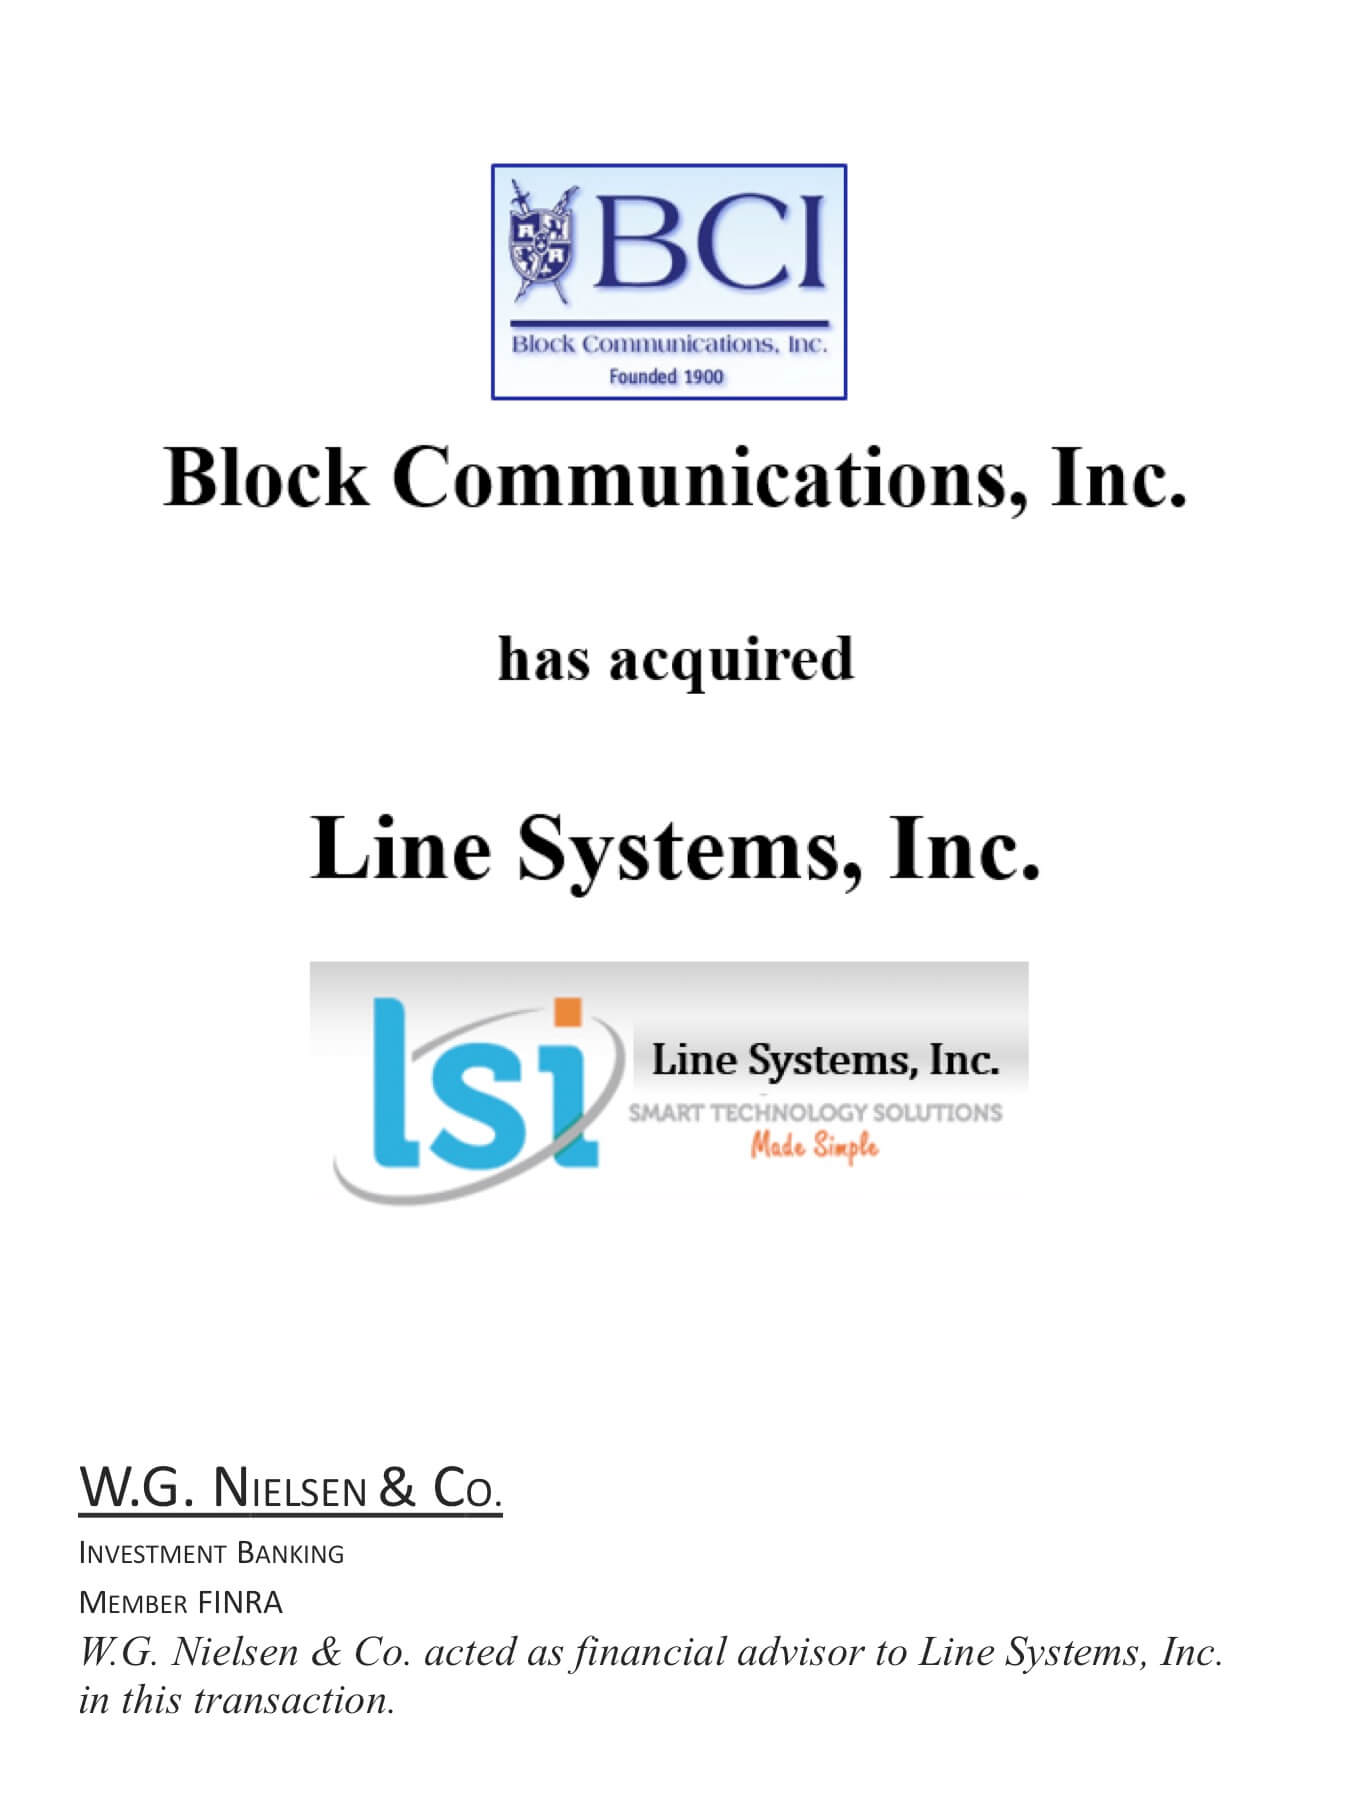 block communications investment banking transaction